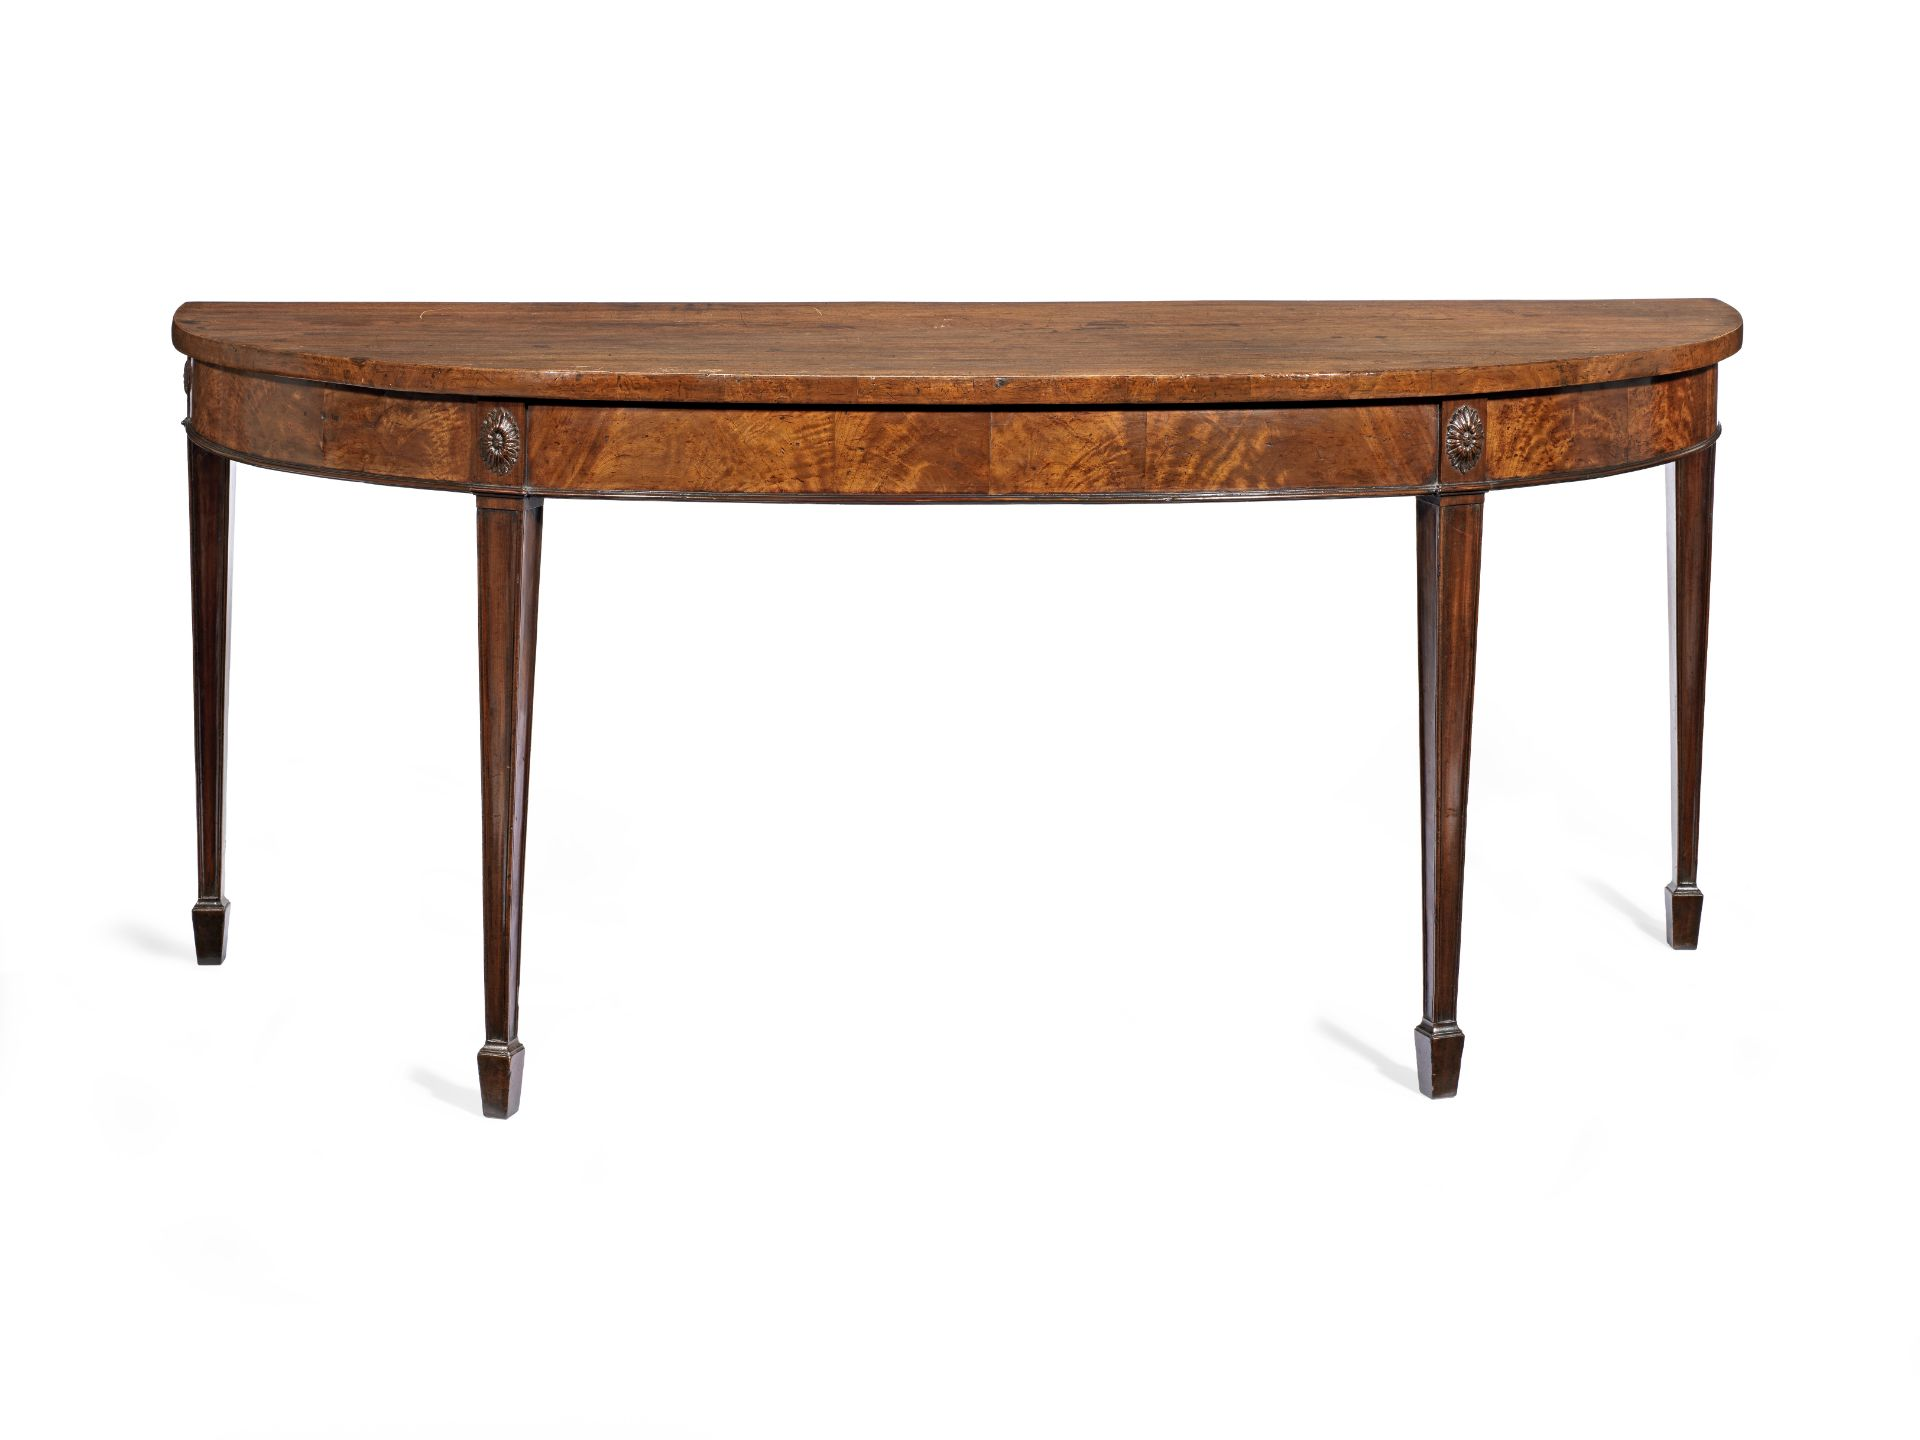 Los 101 - A George III mahogany demi-lune serving table